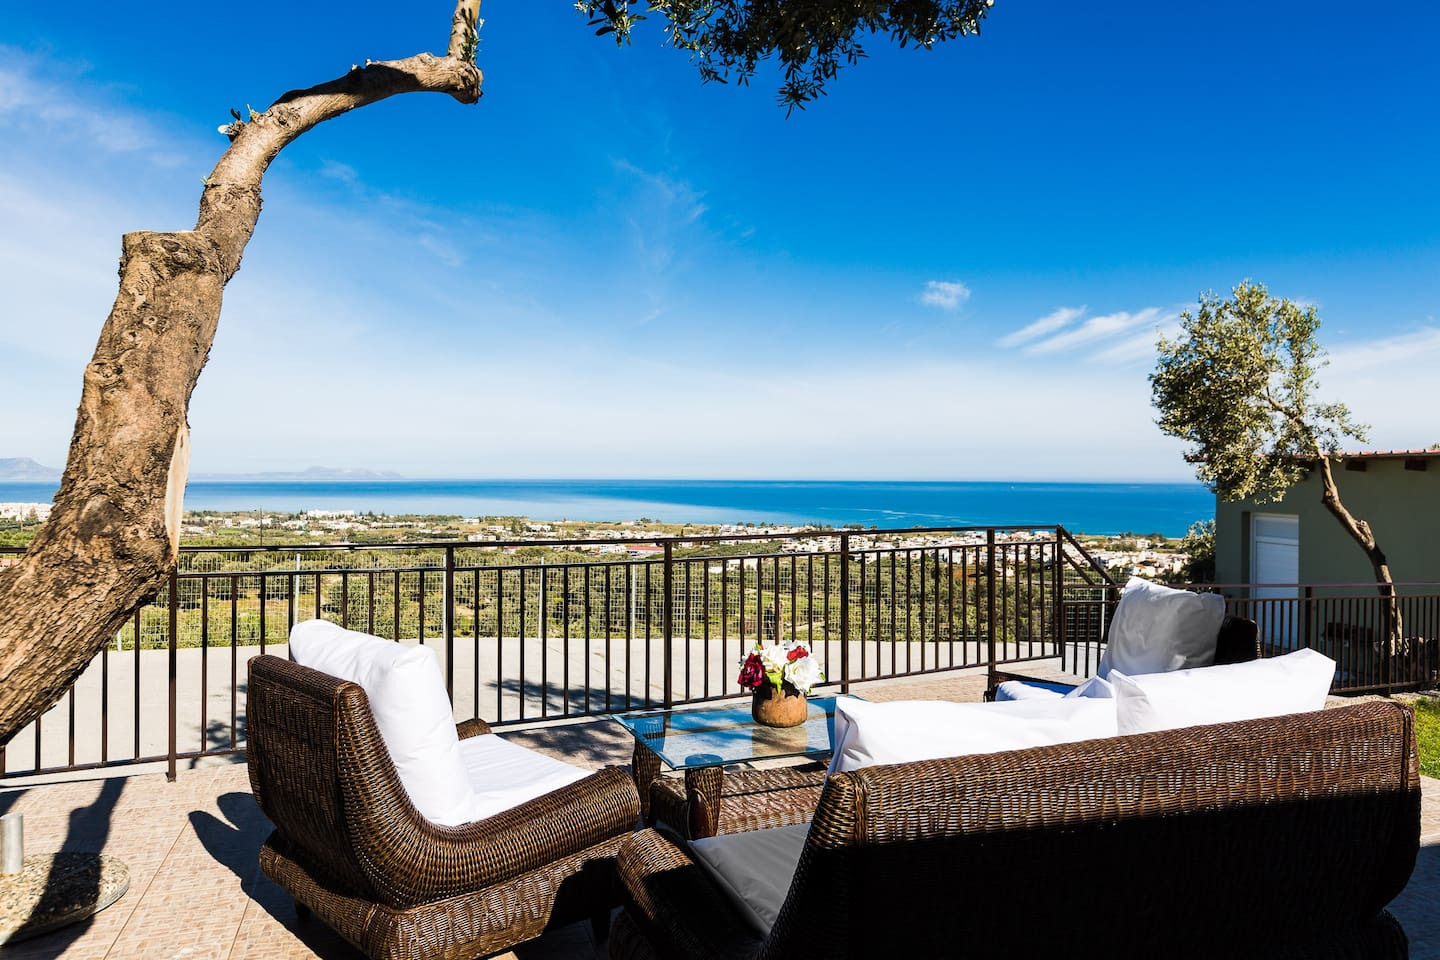 Enjoy the spectacular view from the spacious terrace!